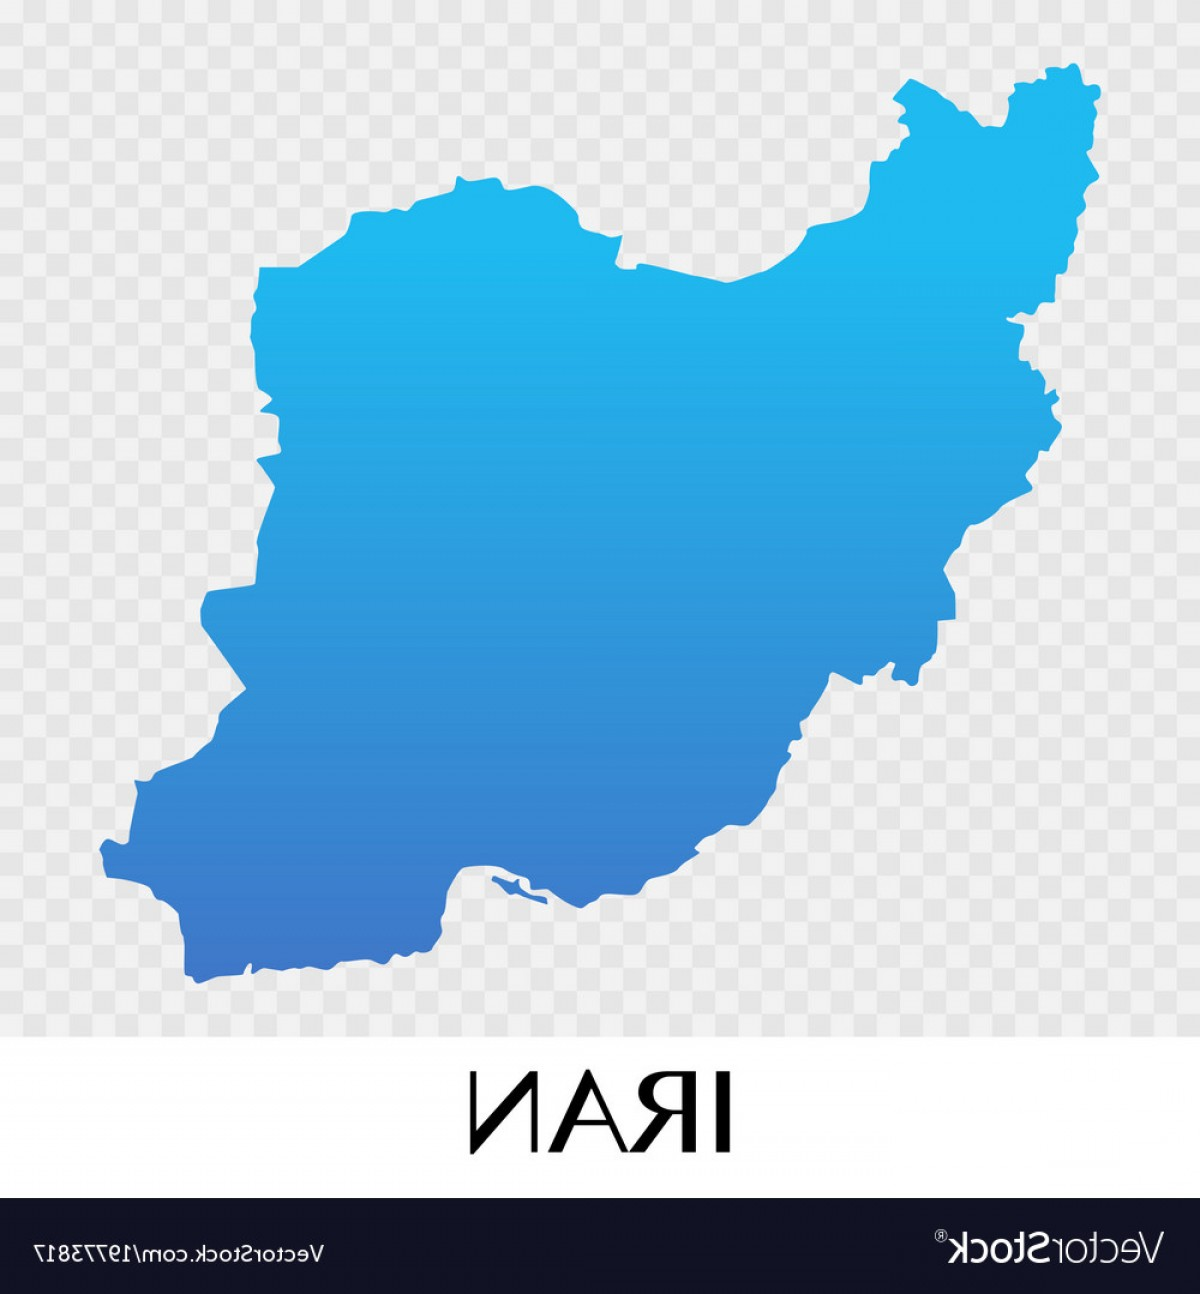 Iran Map Vector: Iran Map In Asia Continent Design Vector